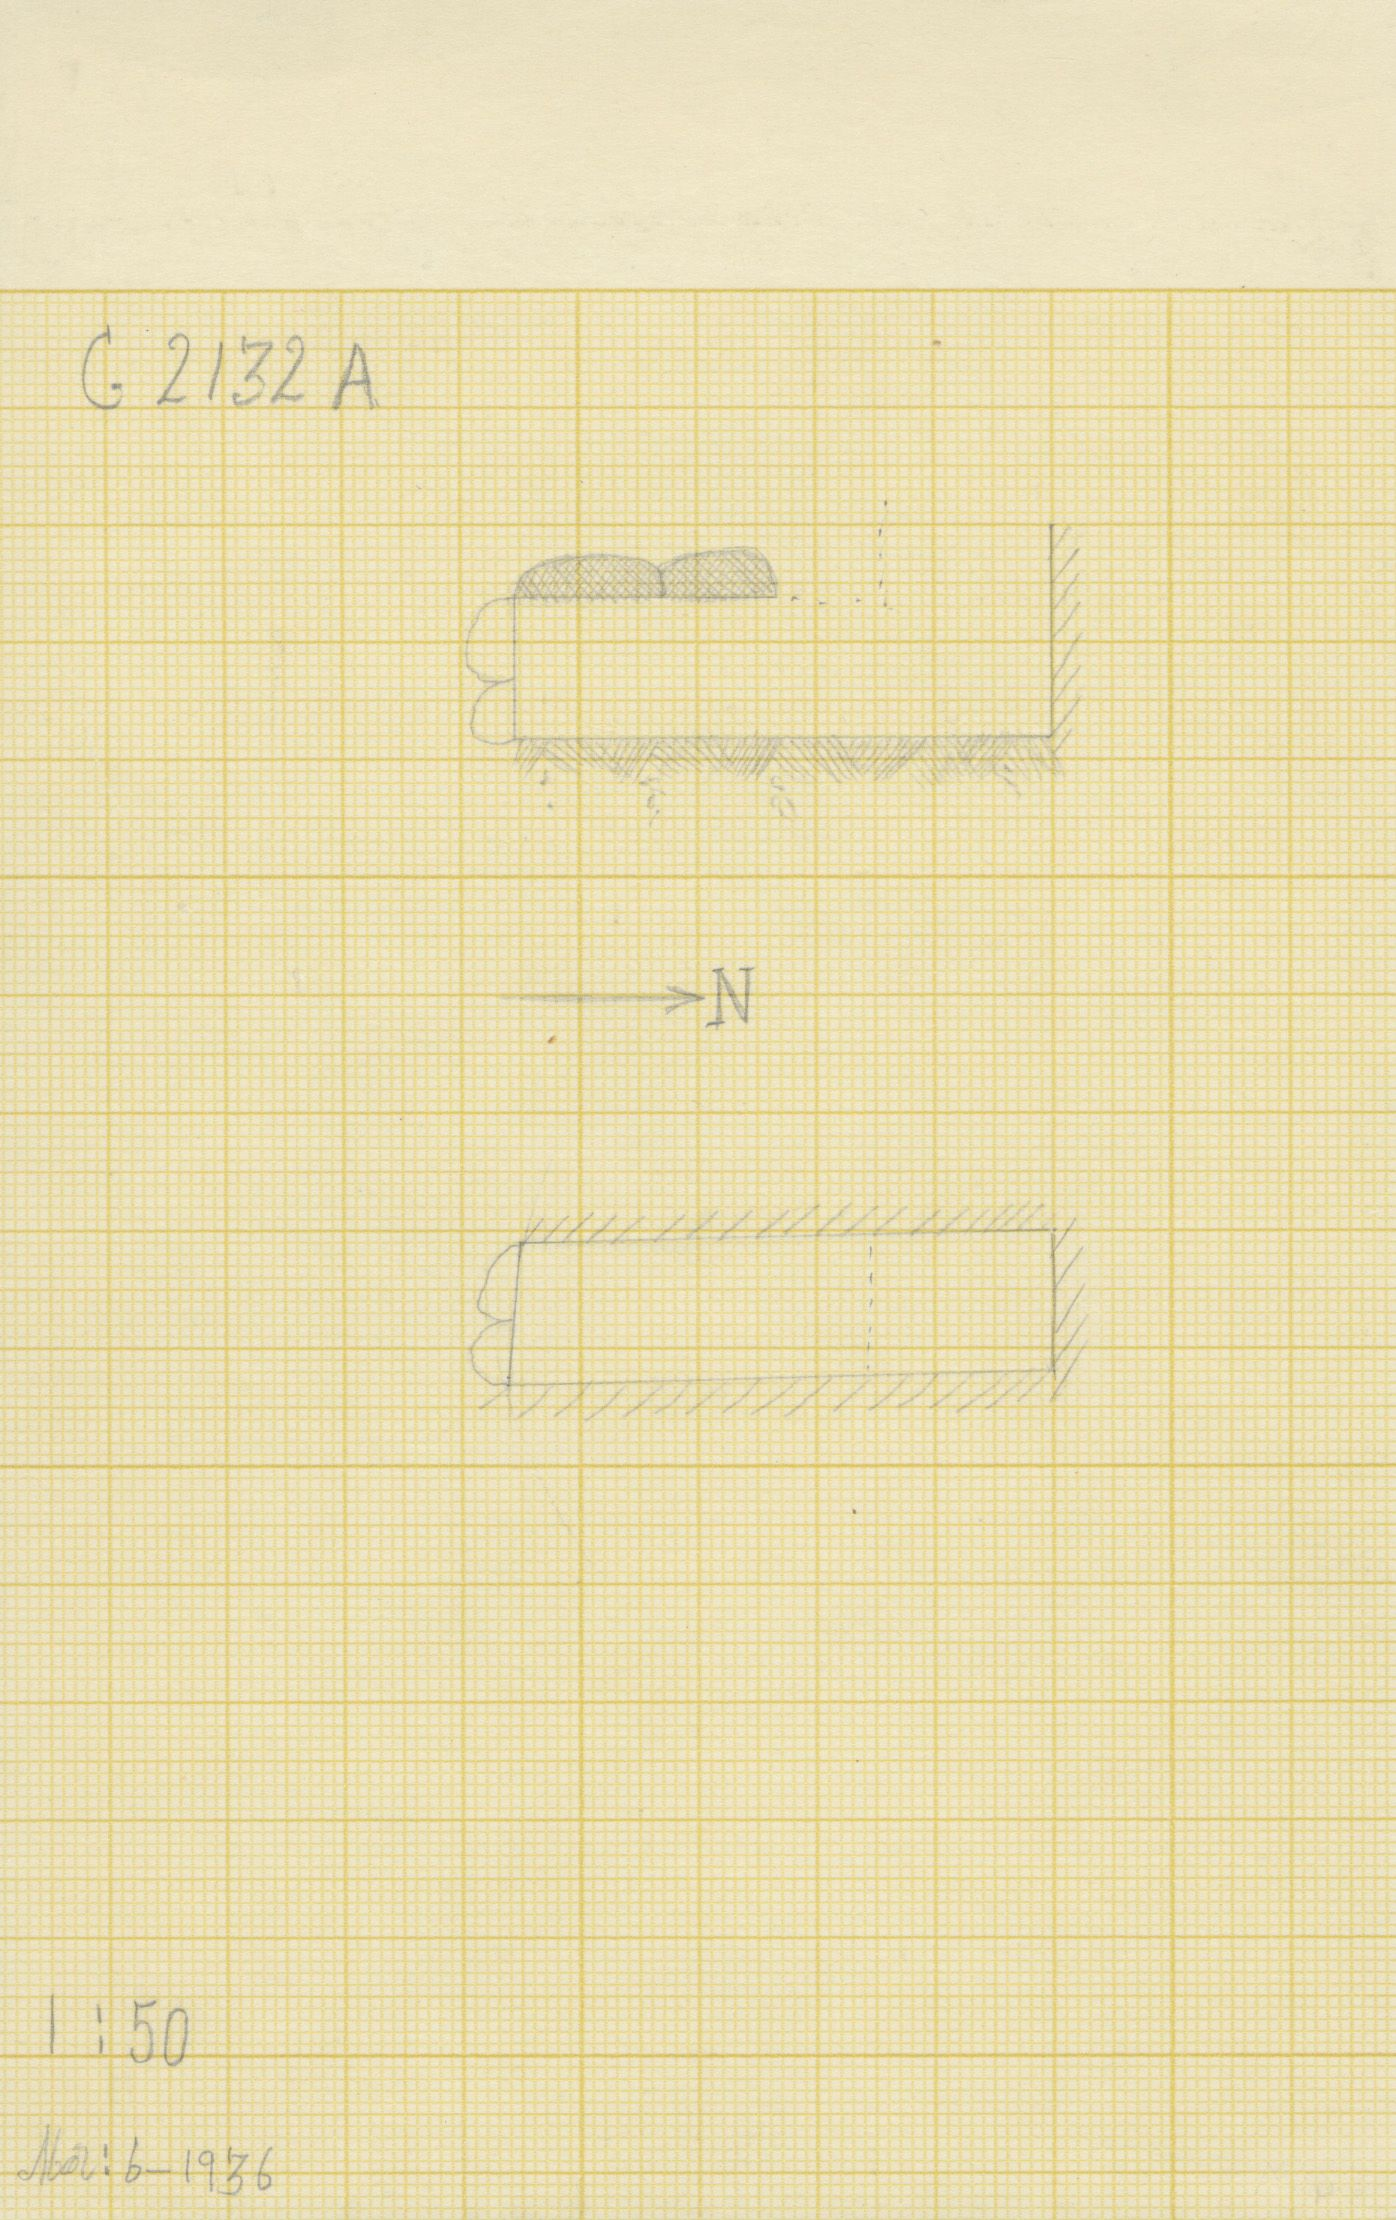 Maps and plans: G 2132, Shaft A